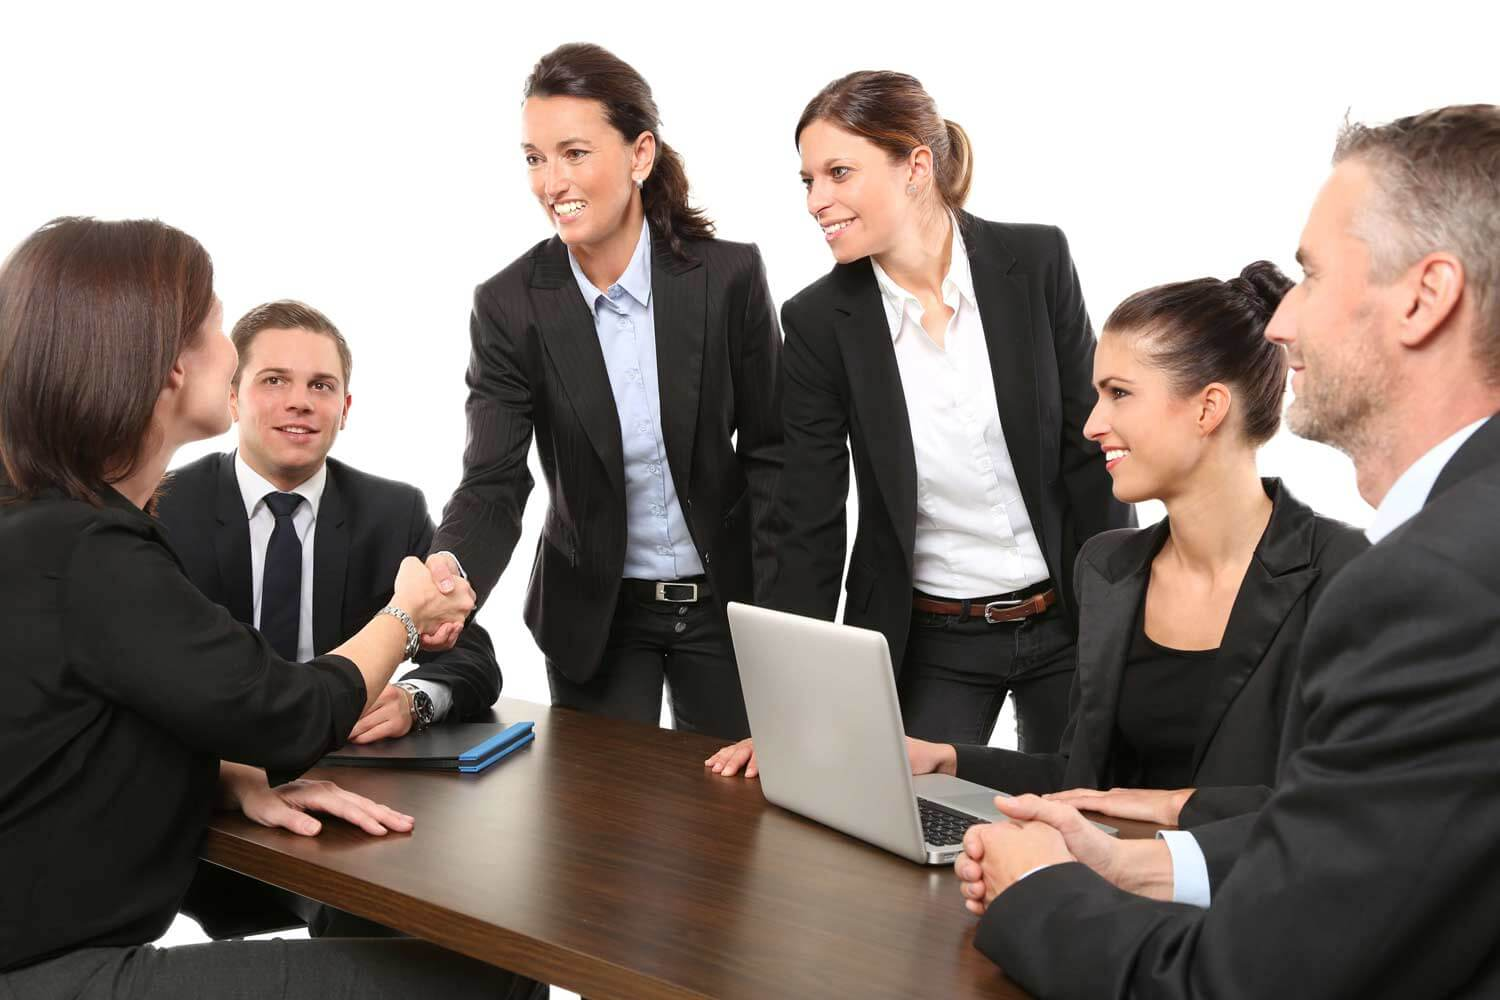 Strategic planning for growing your business could involve acquiring another company.